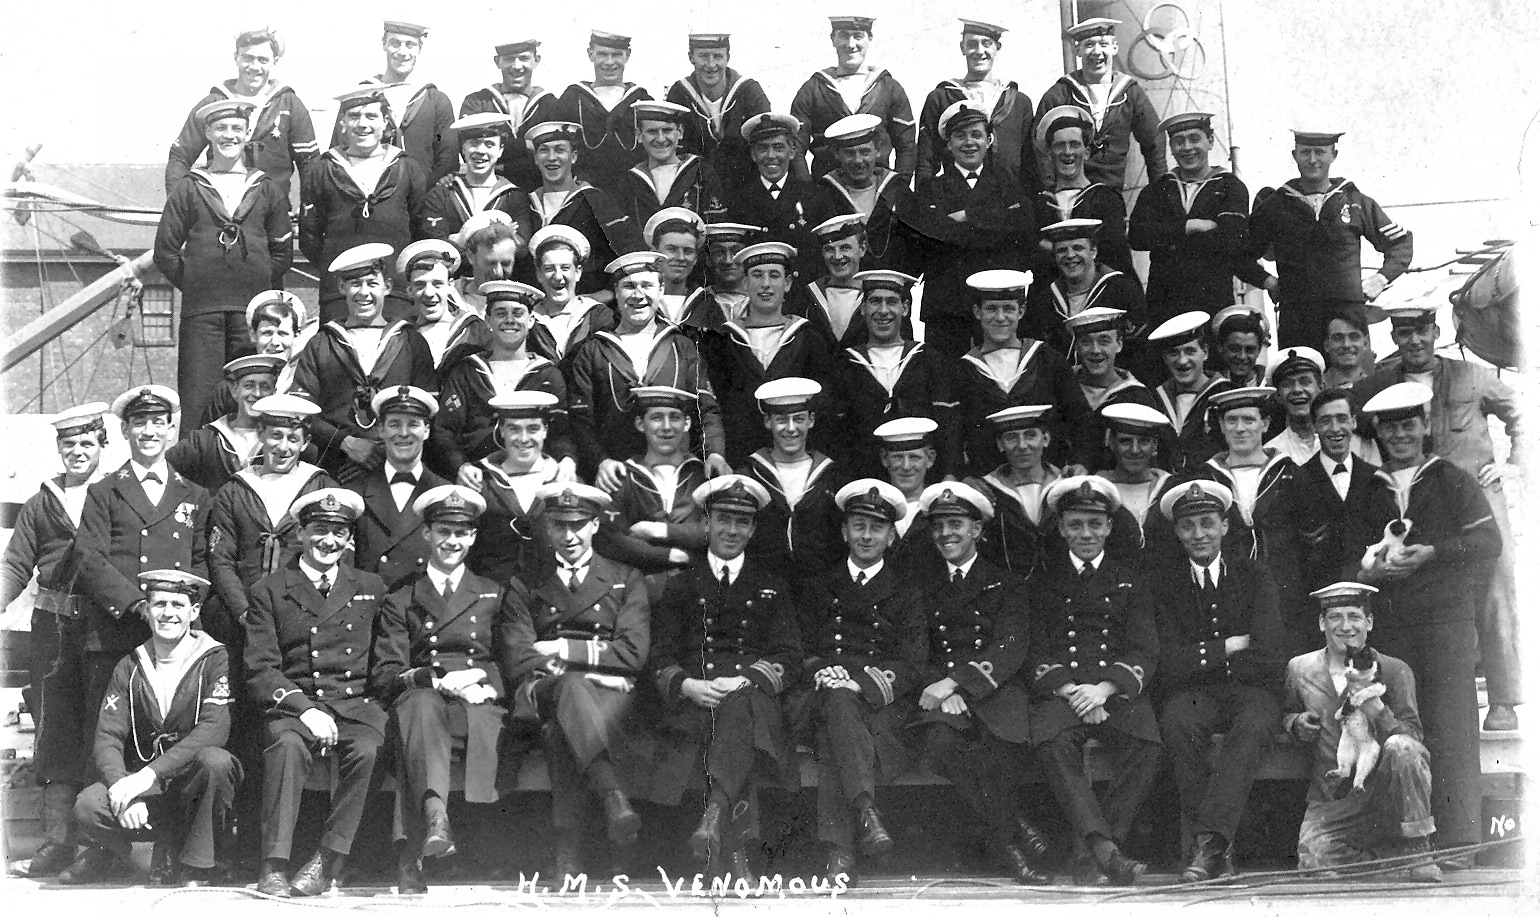 The ship's Company of HMS Venomous